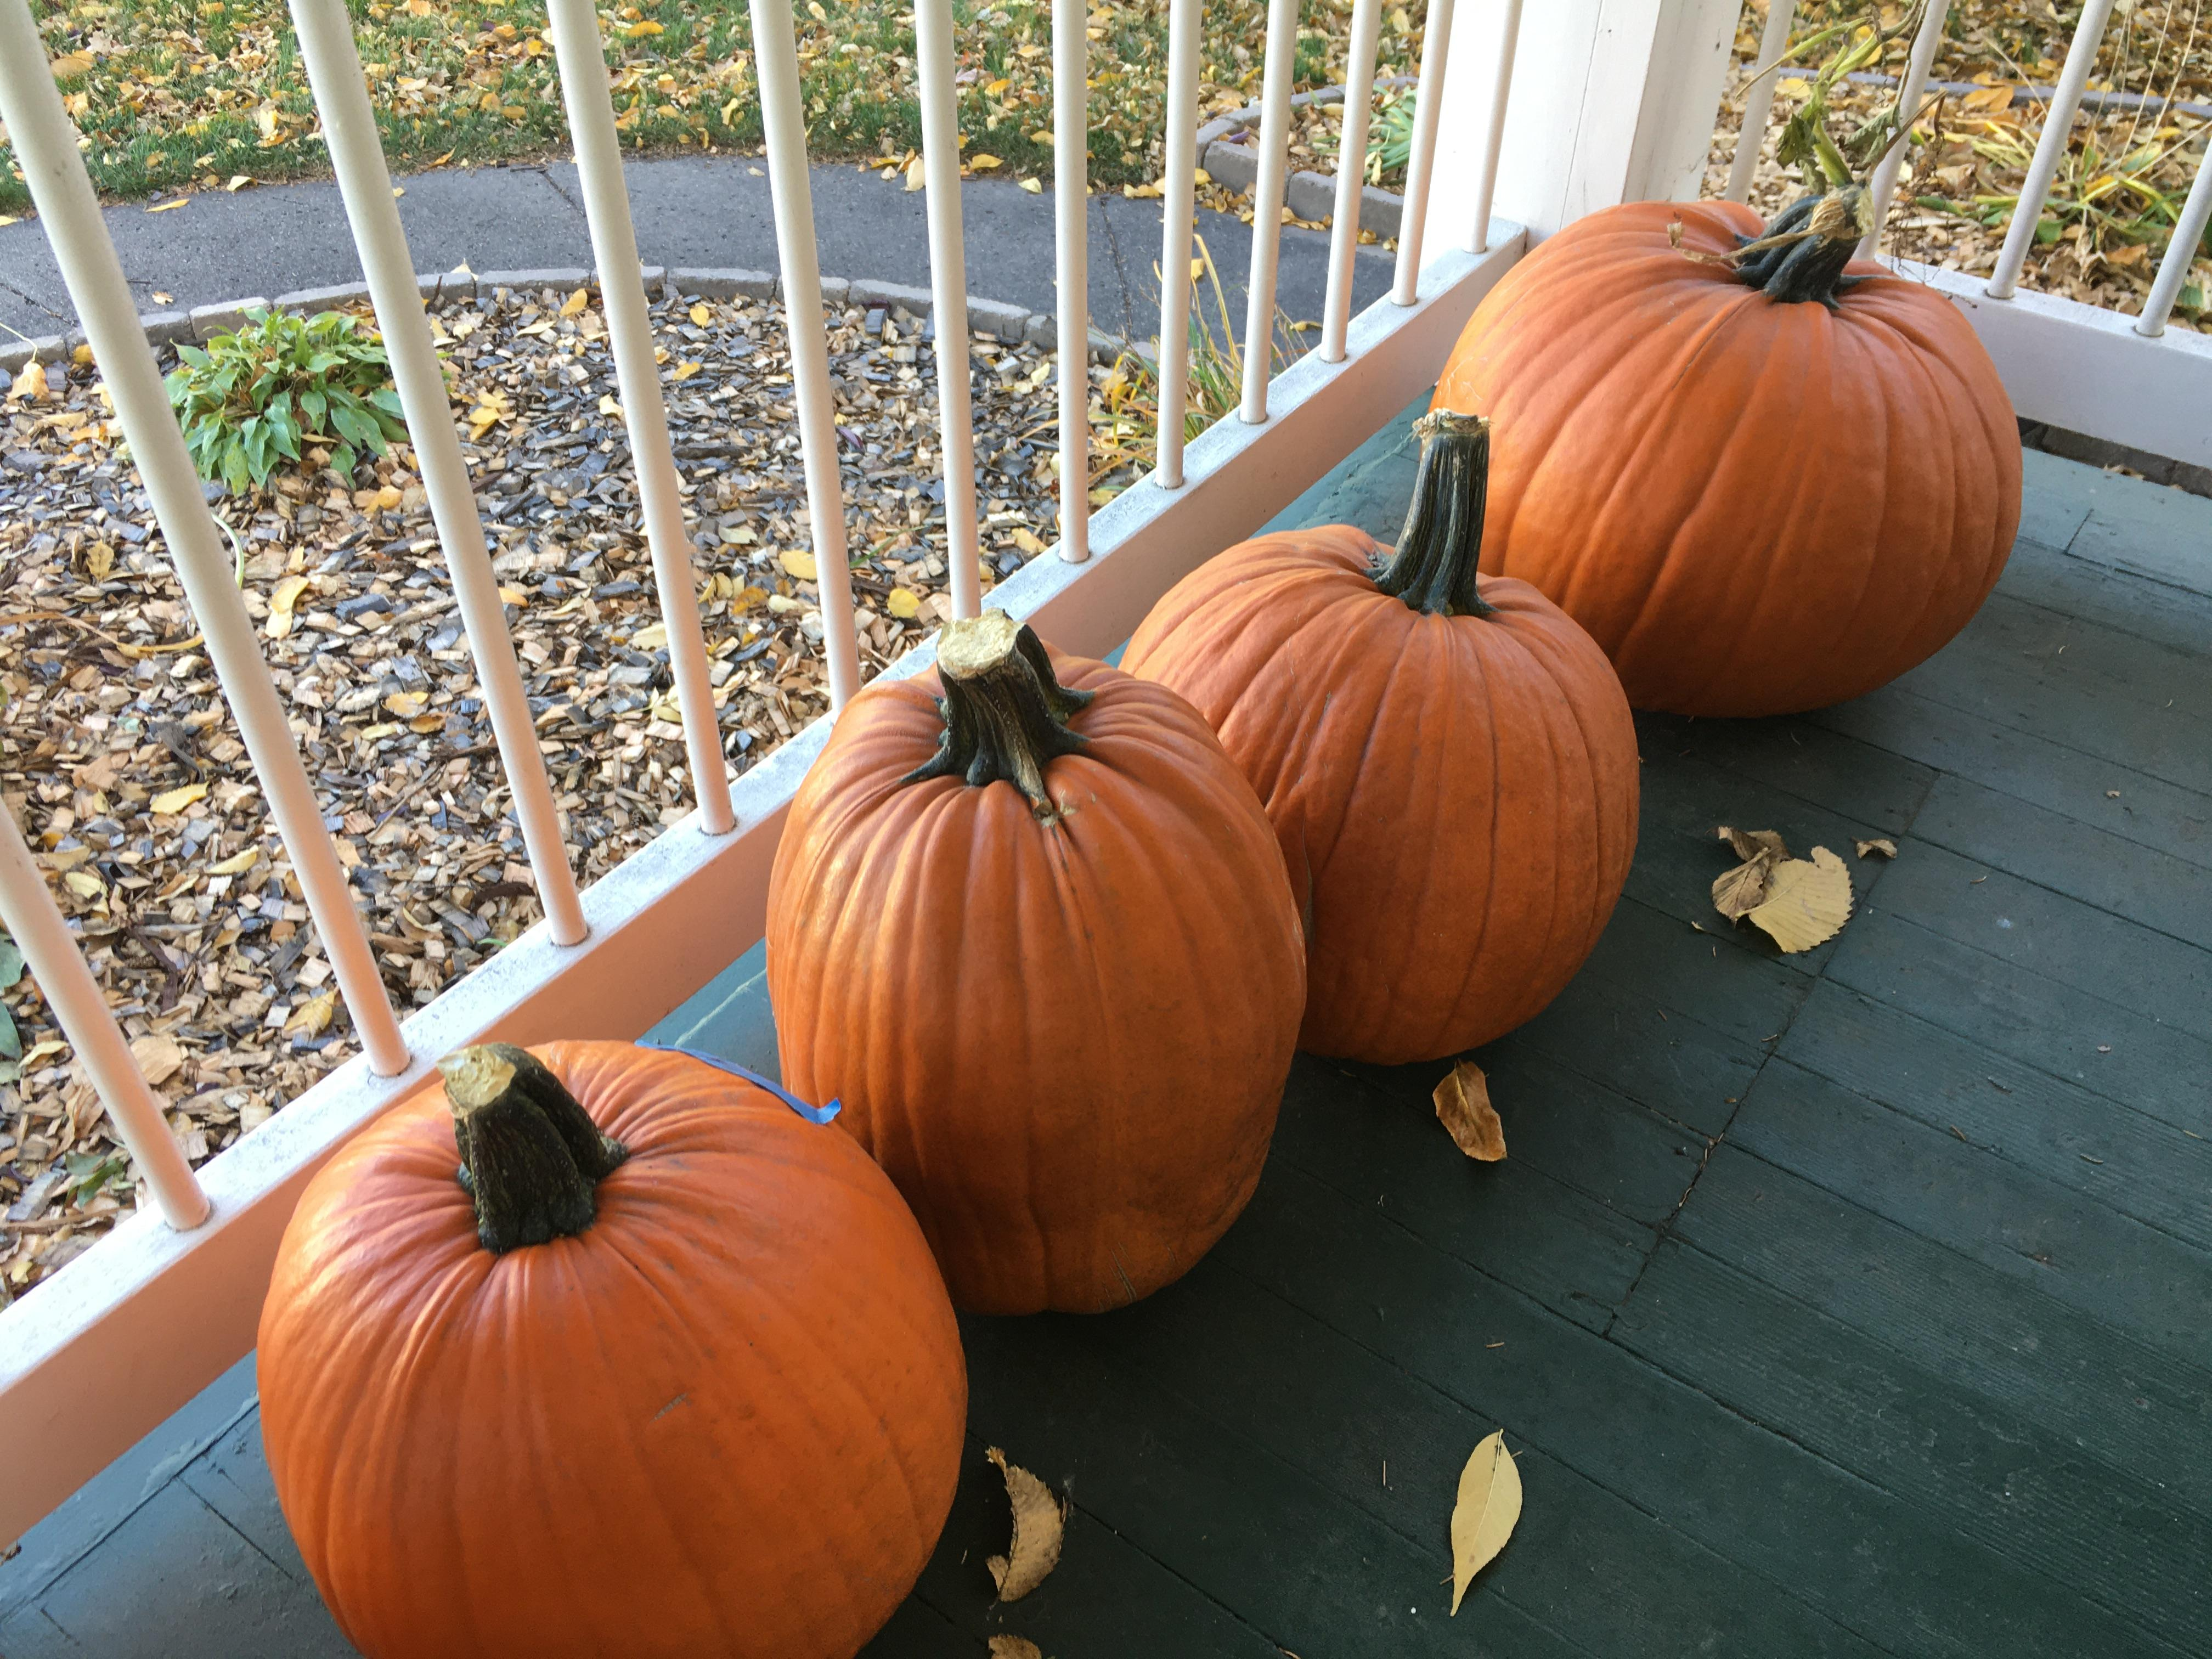 Pumpkins are believed to have originated in Central America. (NDSU photo)